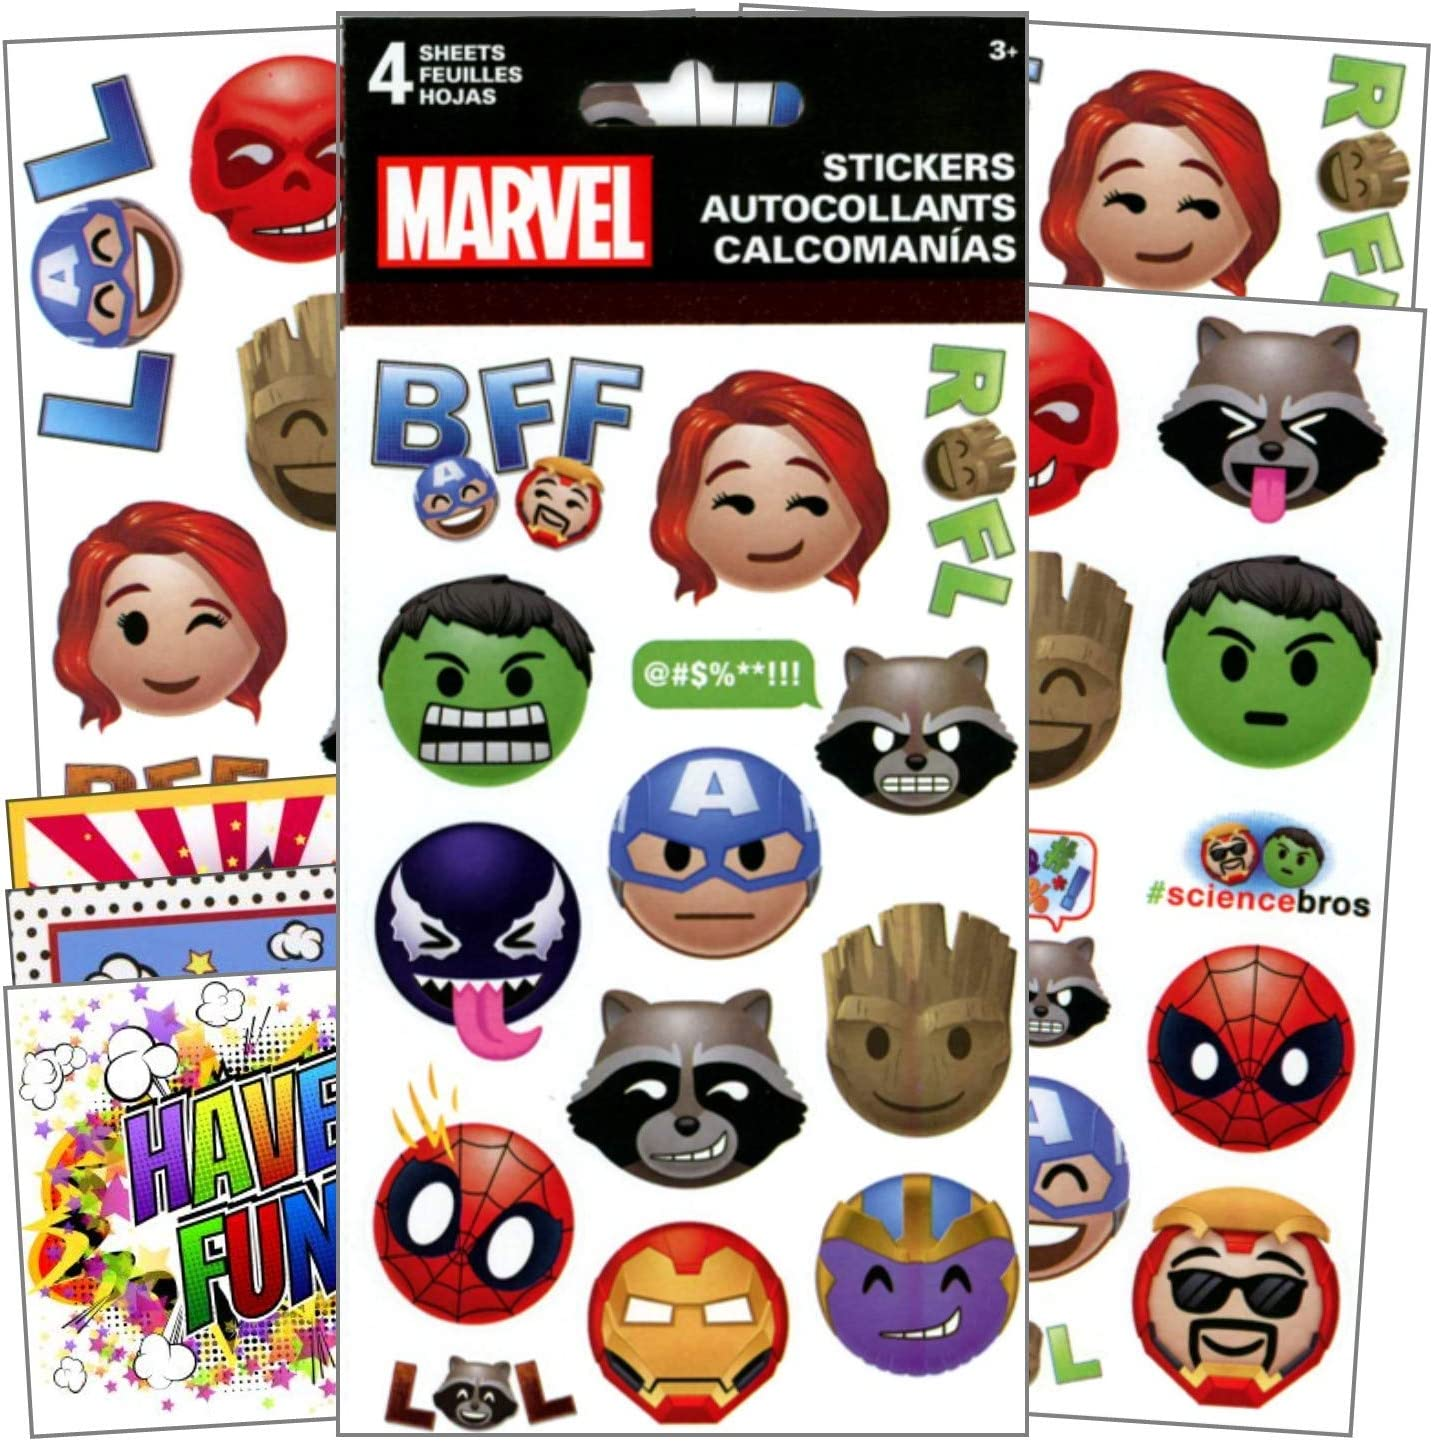 Marvel Avengers Fun Stickers 4 Sheets of Stickers Bundle Includes 3 Specialty Separately Licensed GWW Reward Stickers Stickers for Kids